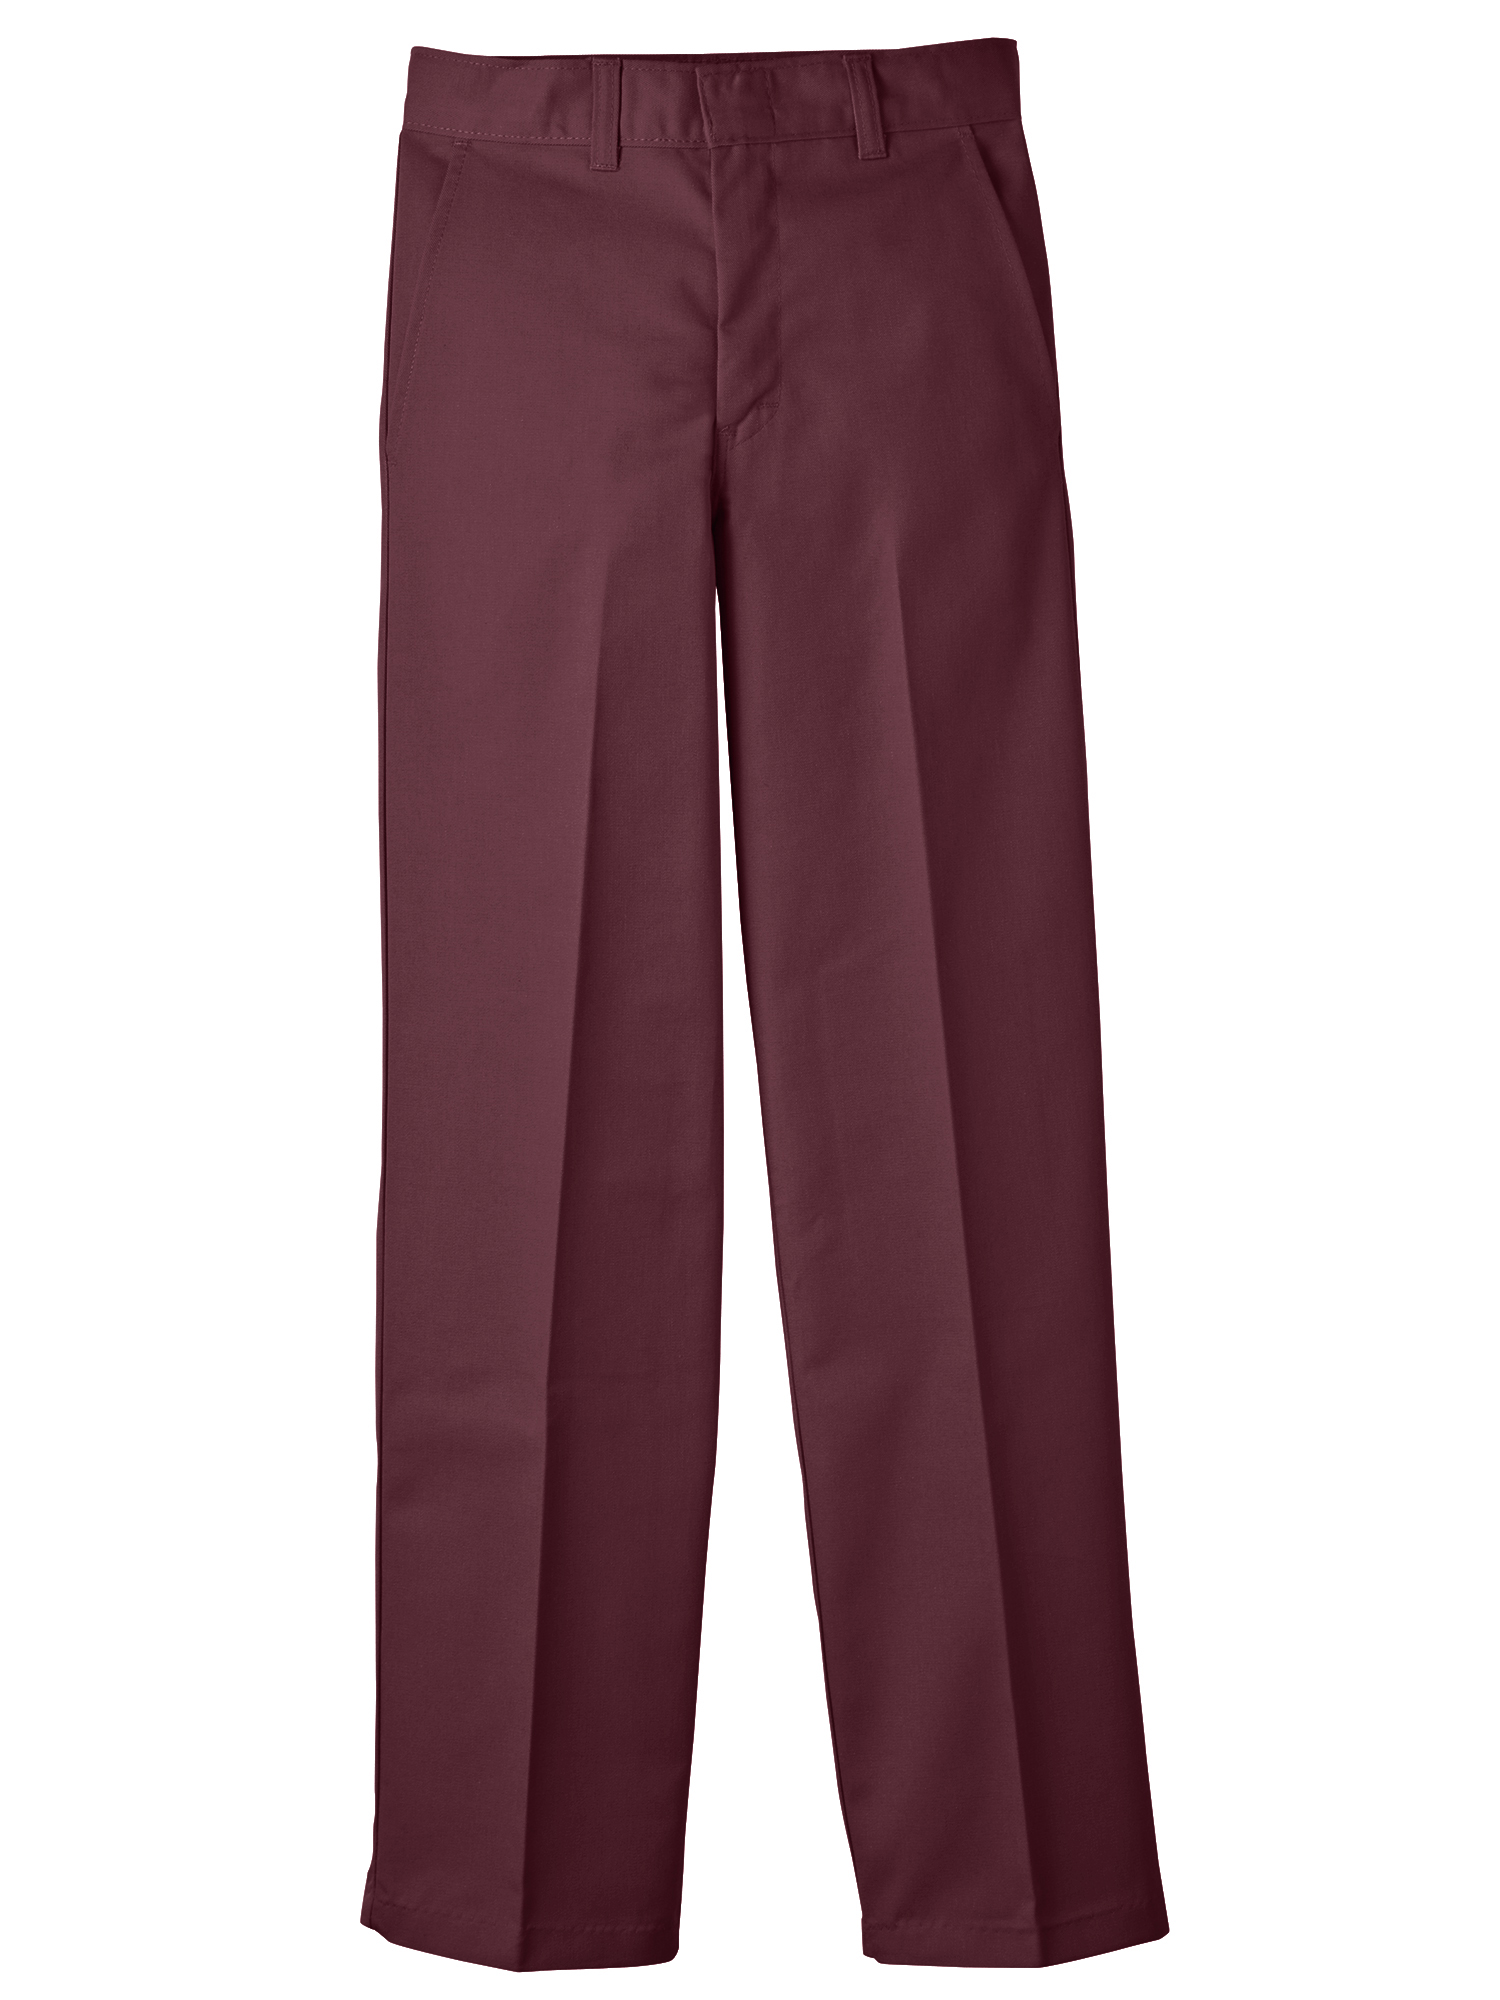 Boys' Uniform Classic Fit Straight Leg Flat Front Pants (Little Boys)